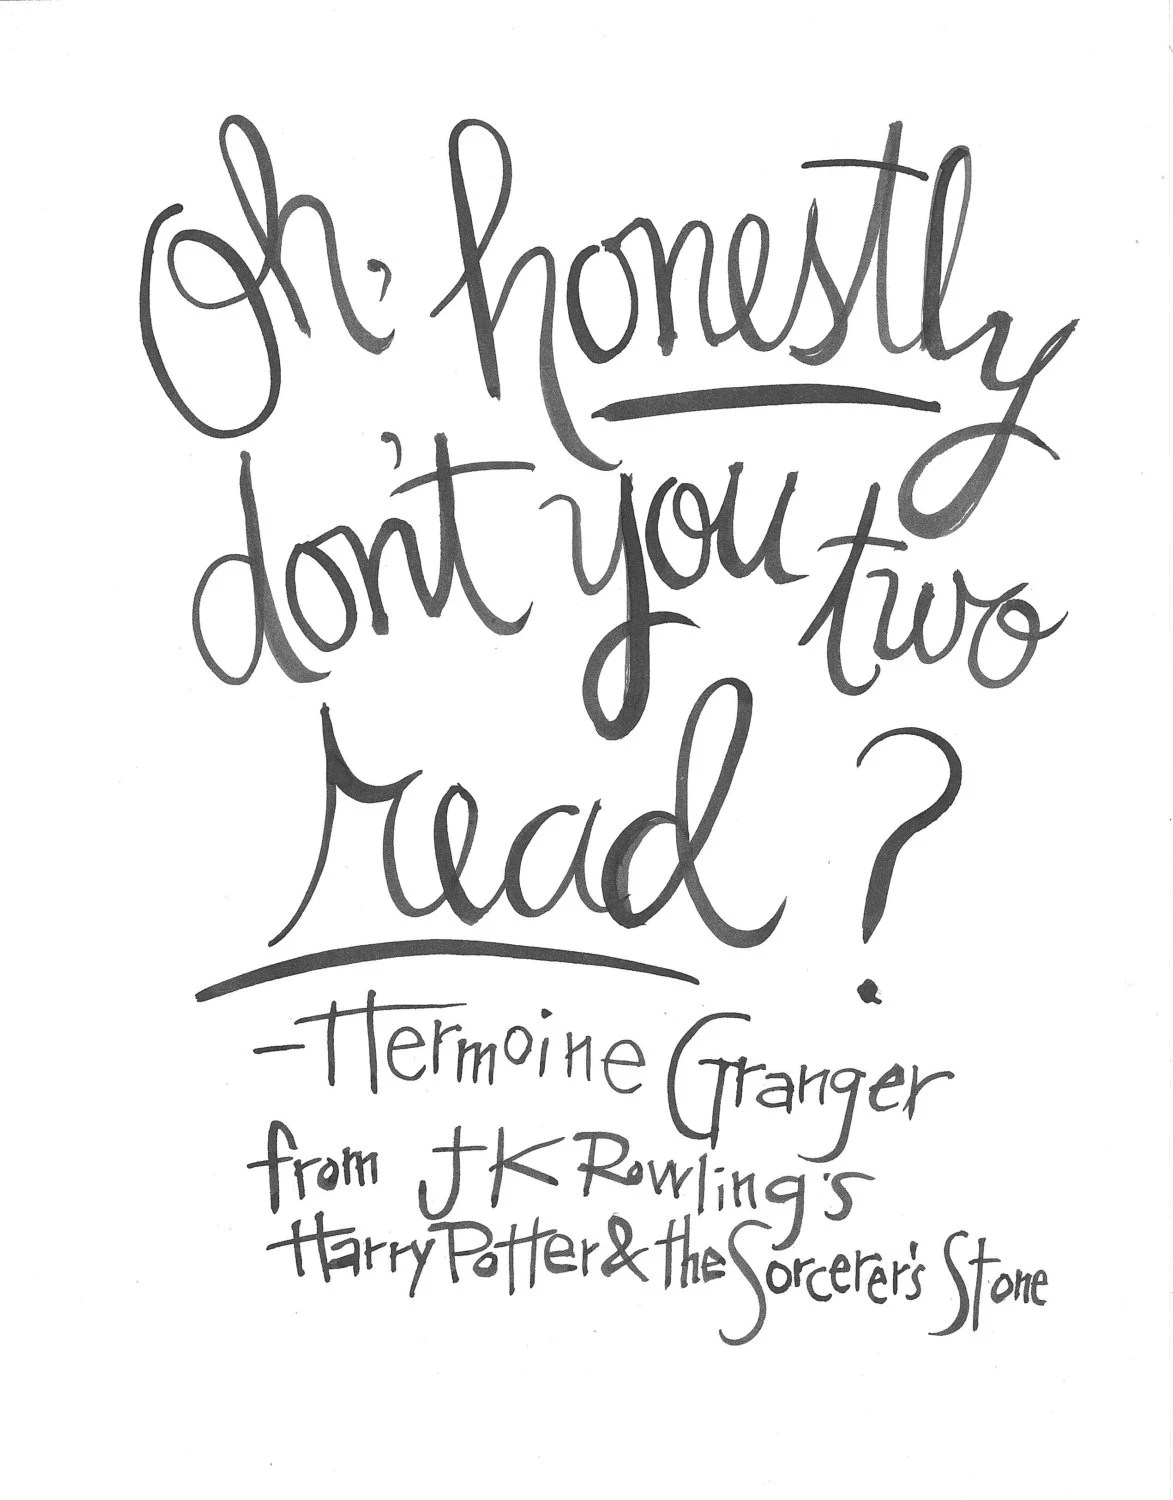 Oh honestly don't you two read Hermoine Granger quote